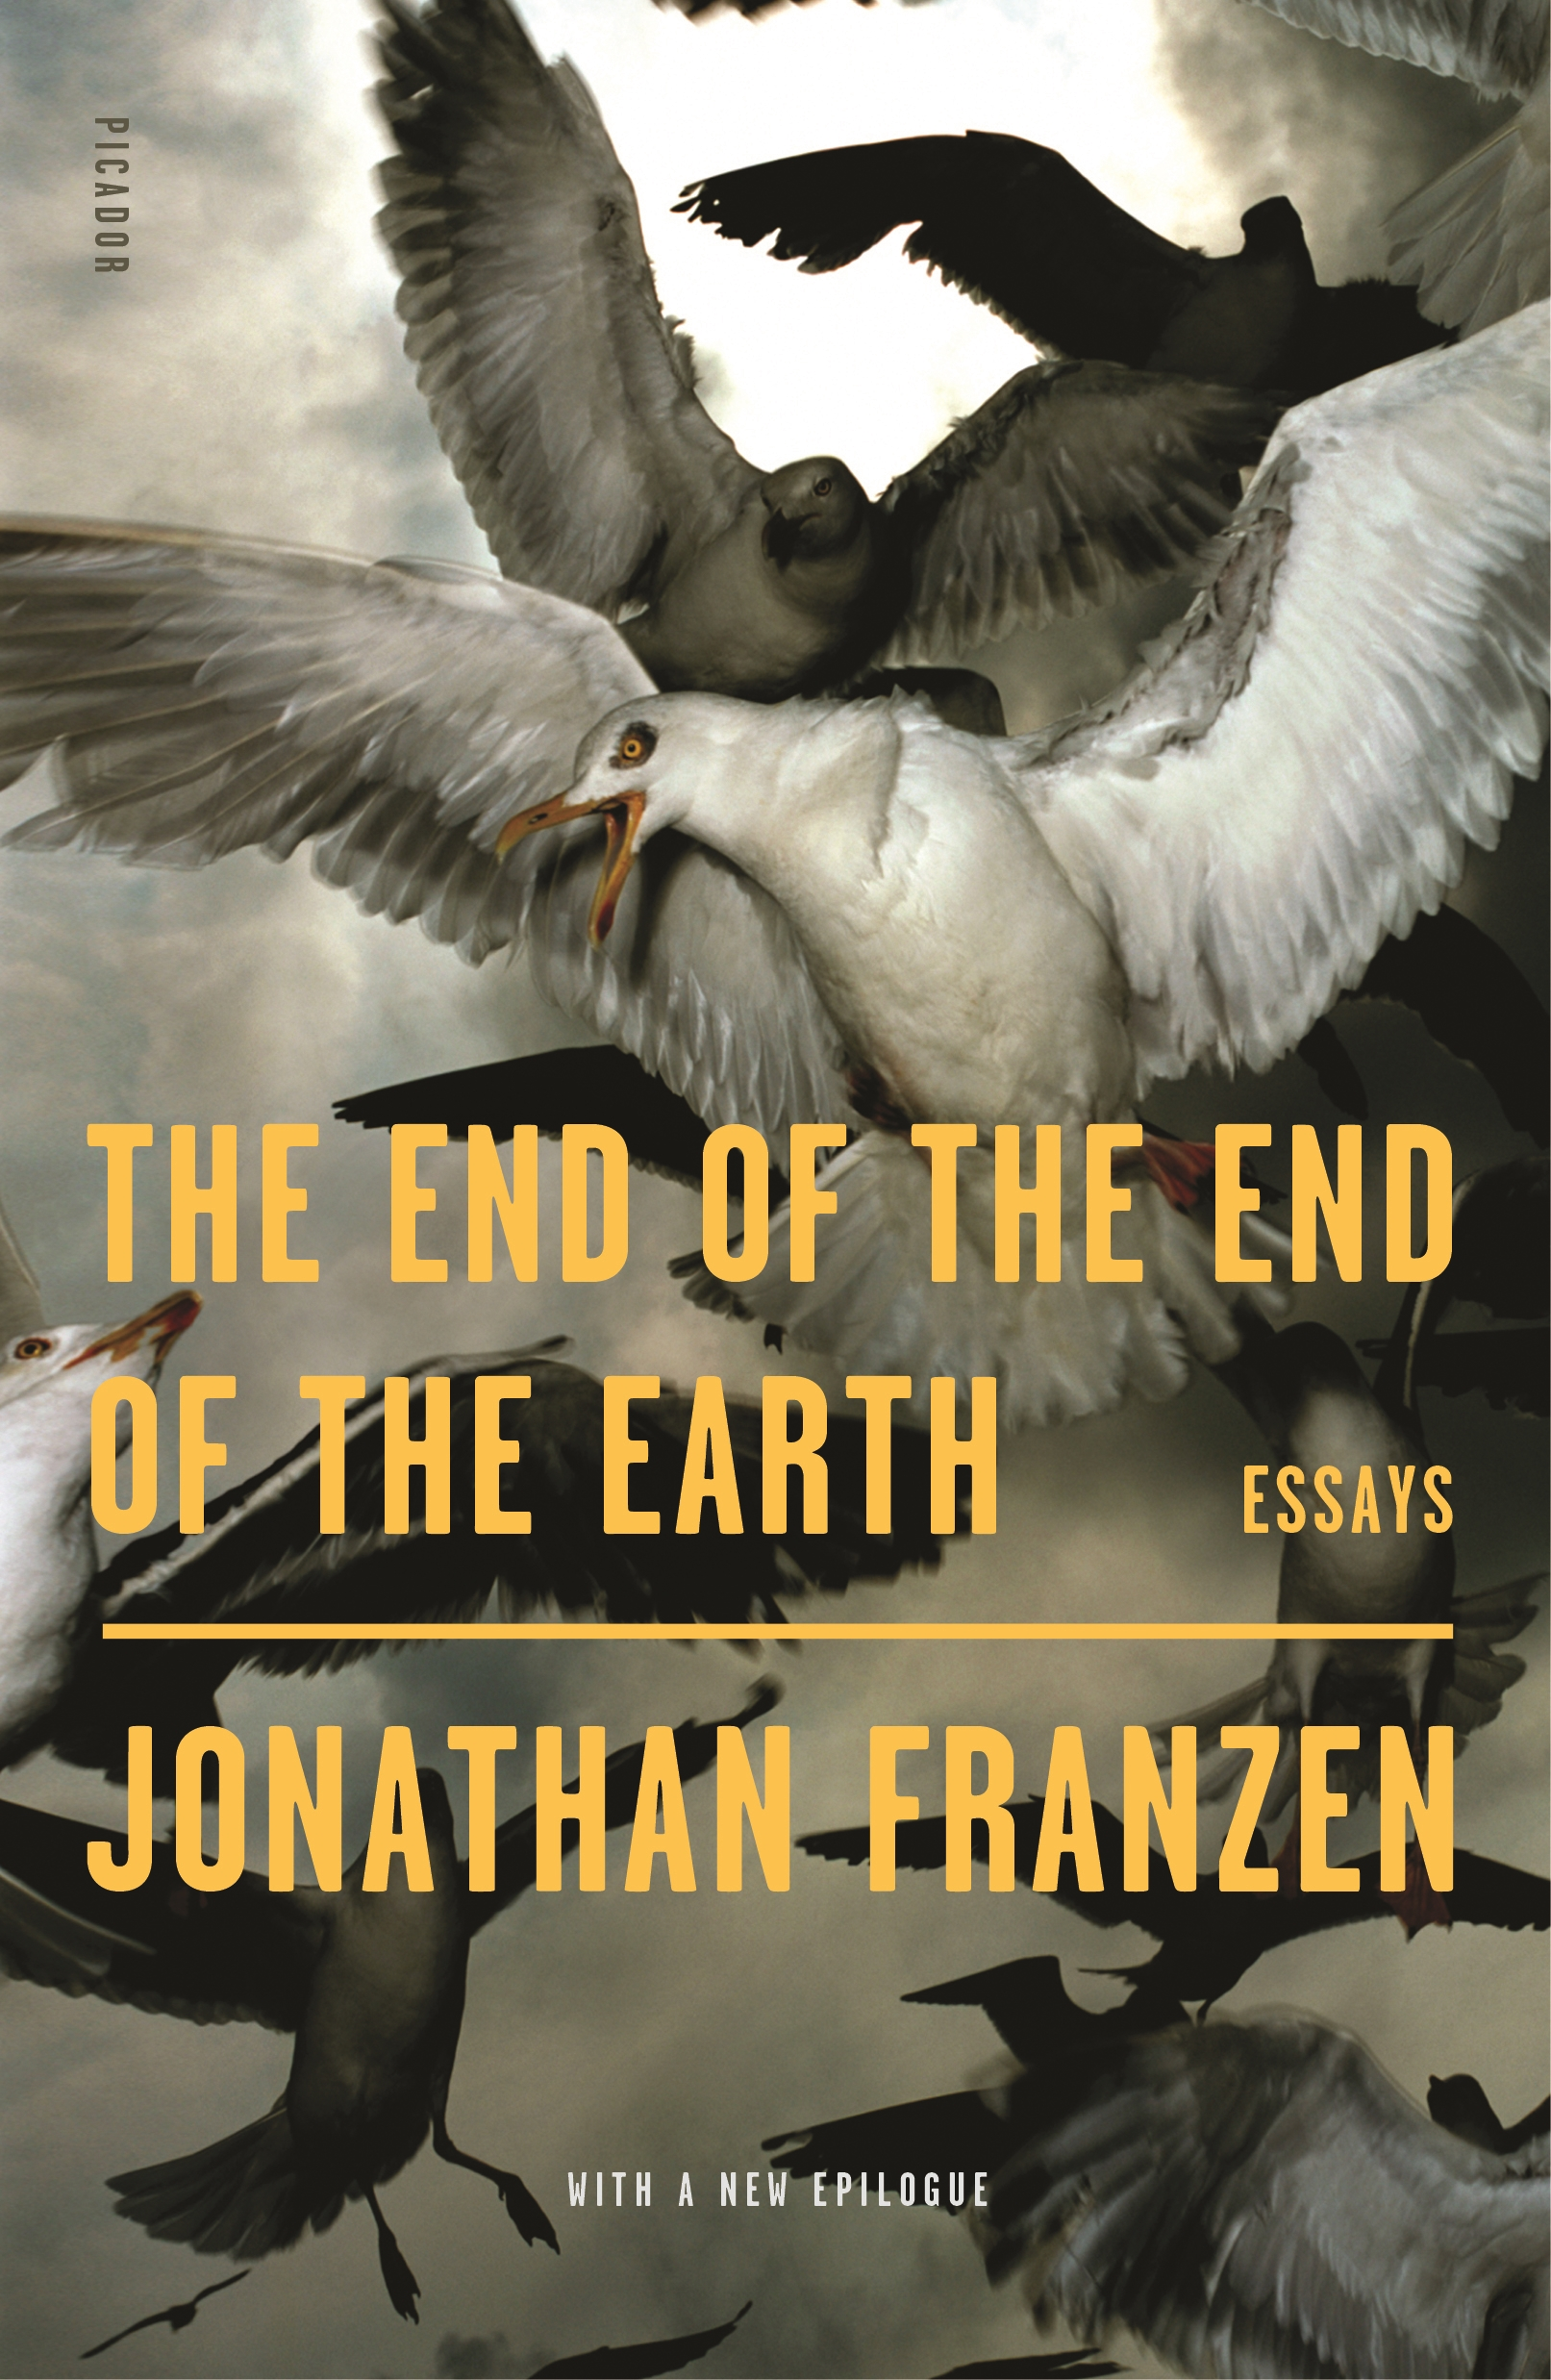 The end of the end of the earth essays cover image